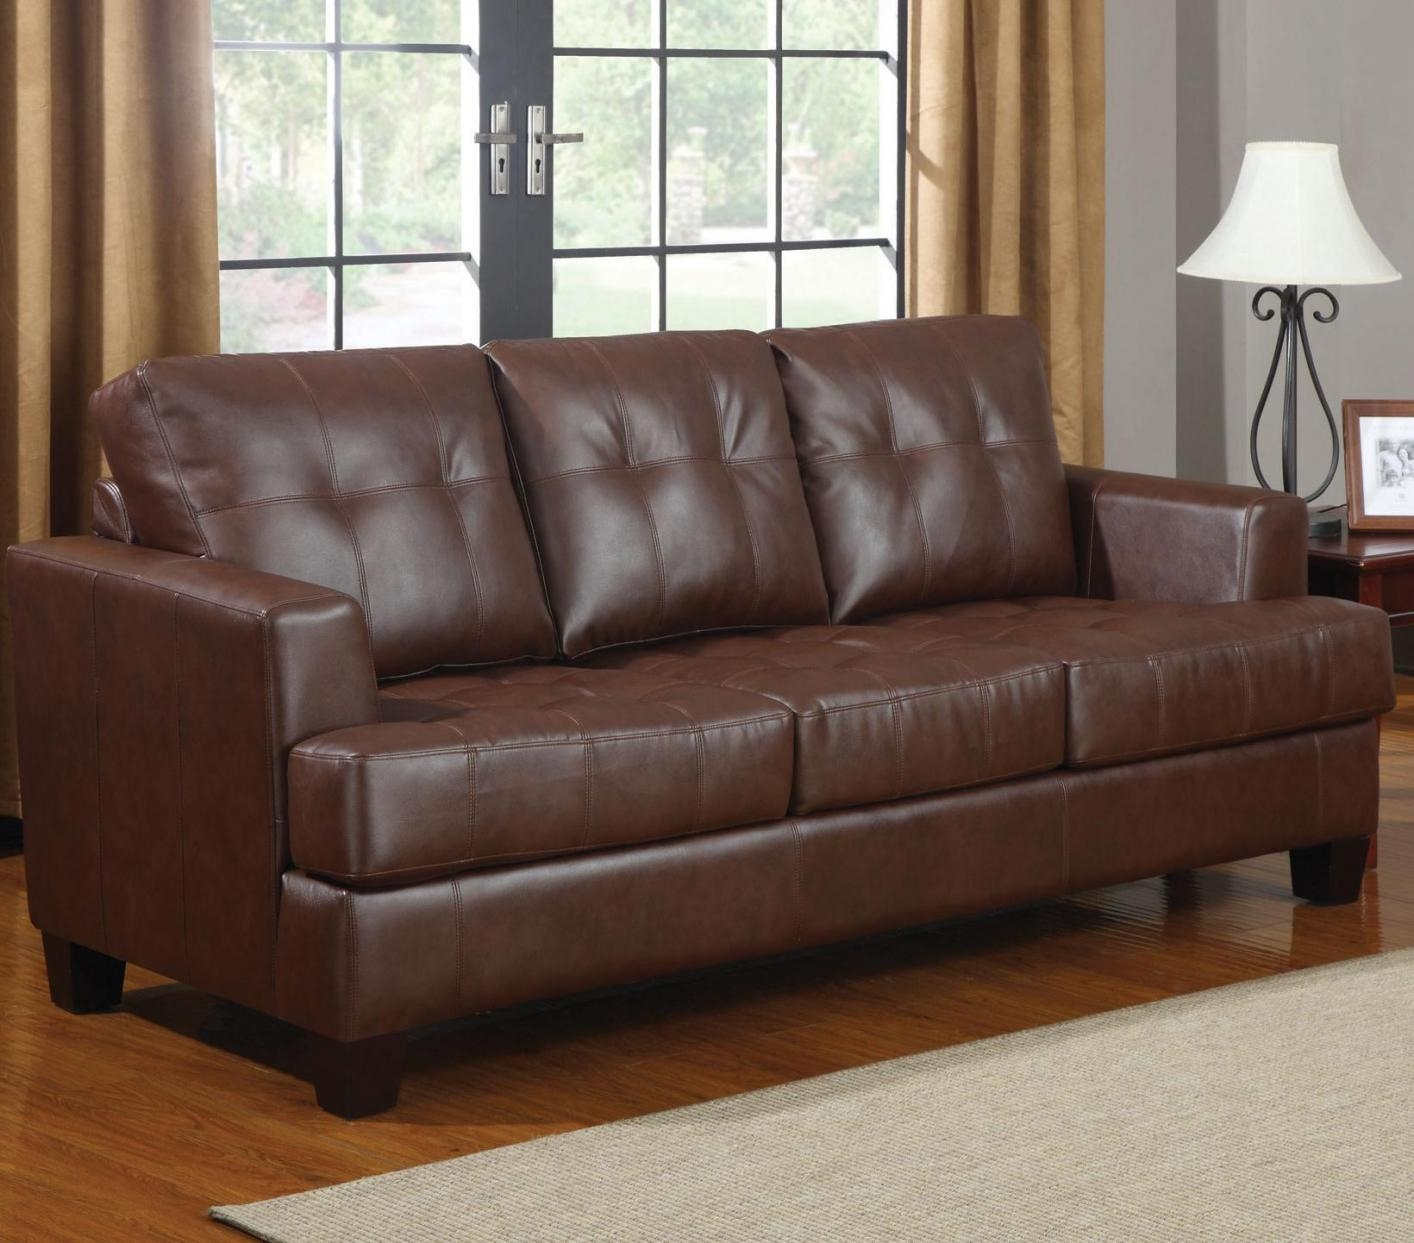 Fancy Dfs Corner Sofa Beds For Sale 65 For Your Vintage Leather Inside Vintage Leather Sofa Beds (Image 8 of 20)